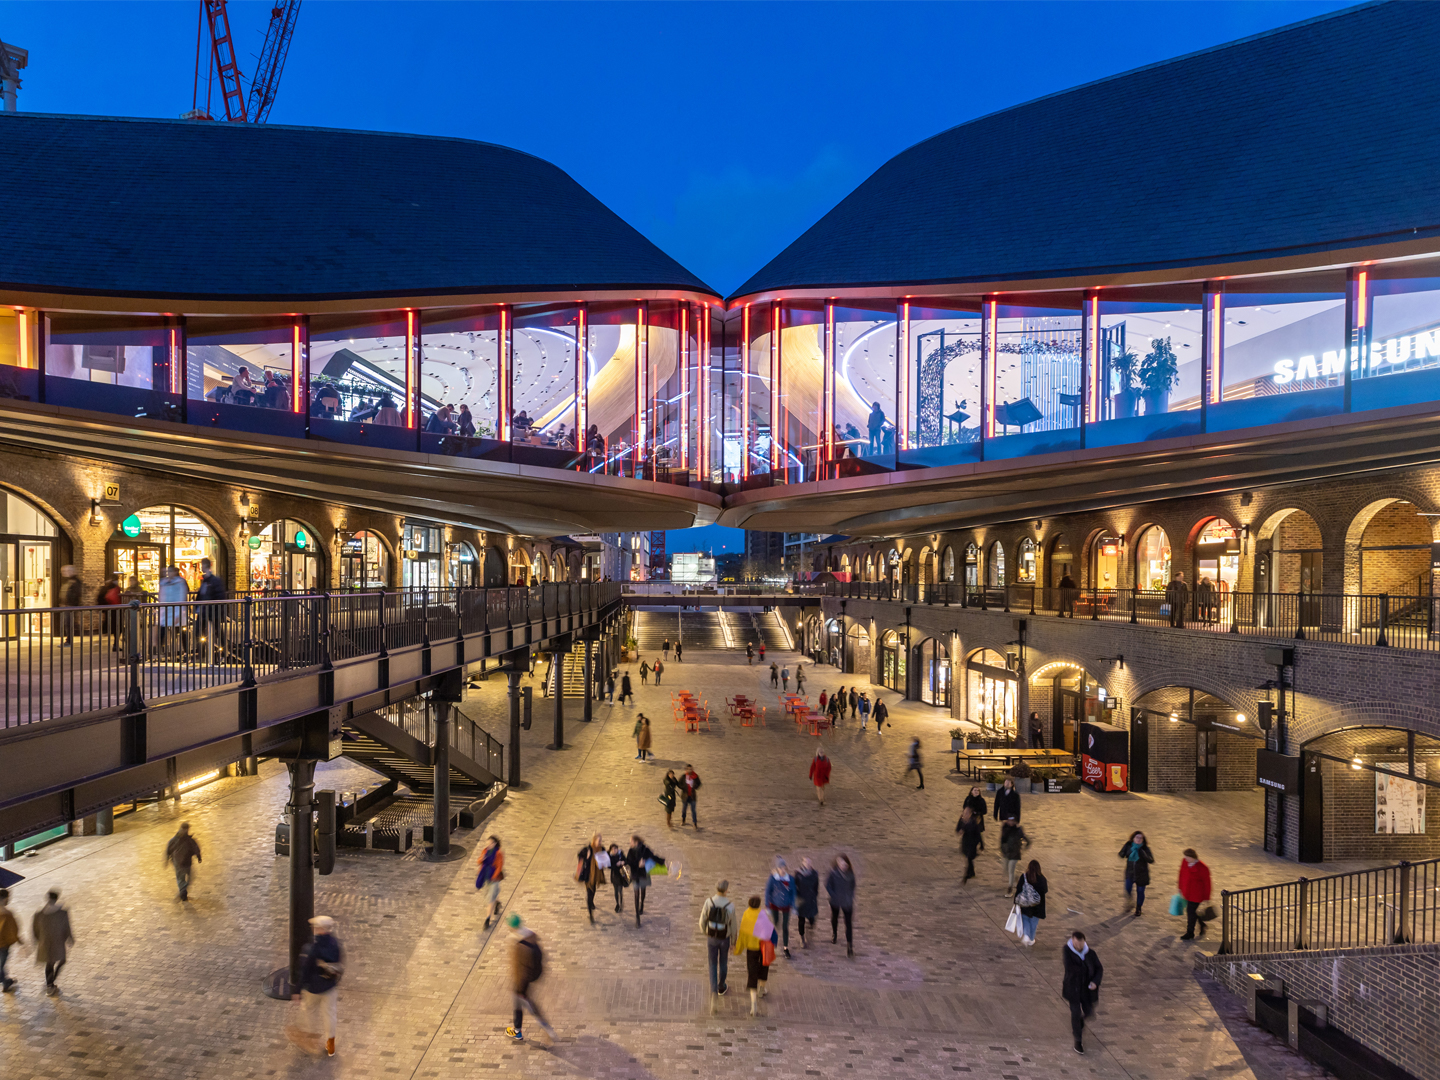 NLA picks Coal Drops Yard for first pop-up